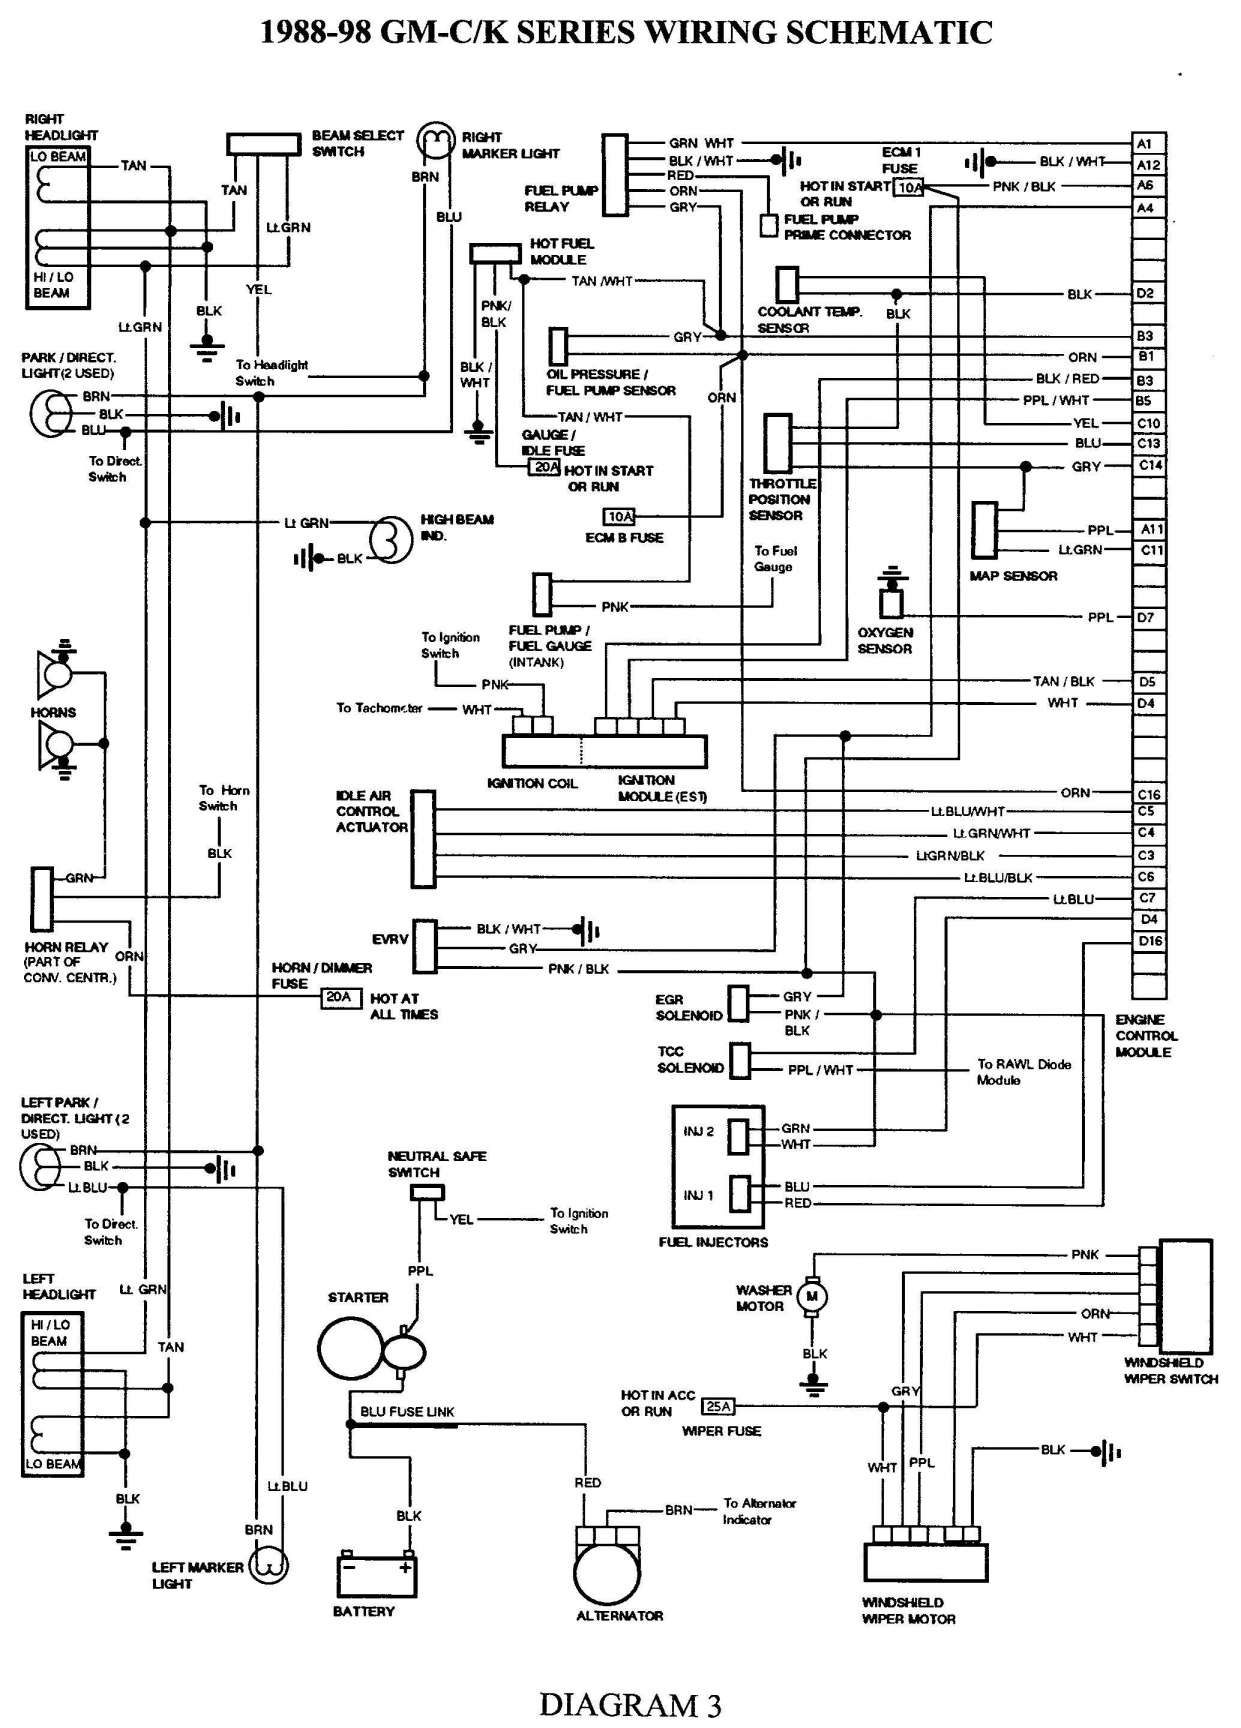 10+ 1994 Gmc Sierra V6 Full Engine Wiring Diagram,Engine Diagram -  Wiringg.net in 2020 | Electrical diagram, 1986 chevy truck, Electrical  wiring diagramPinterest